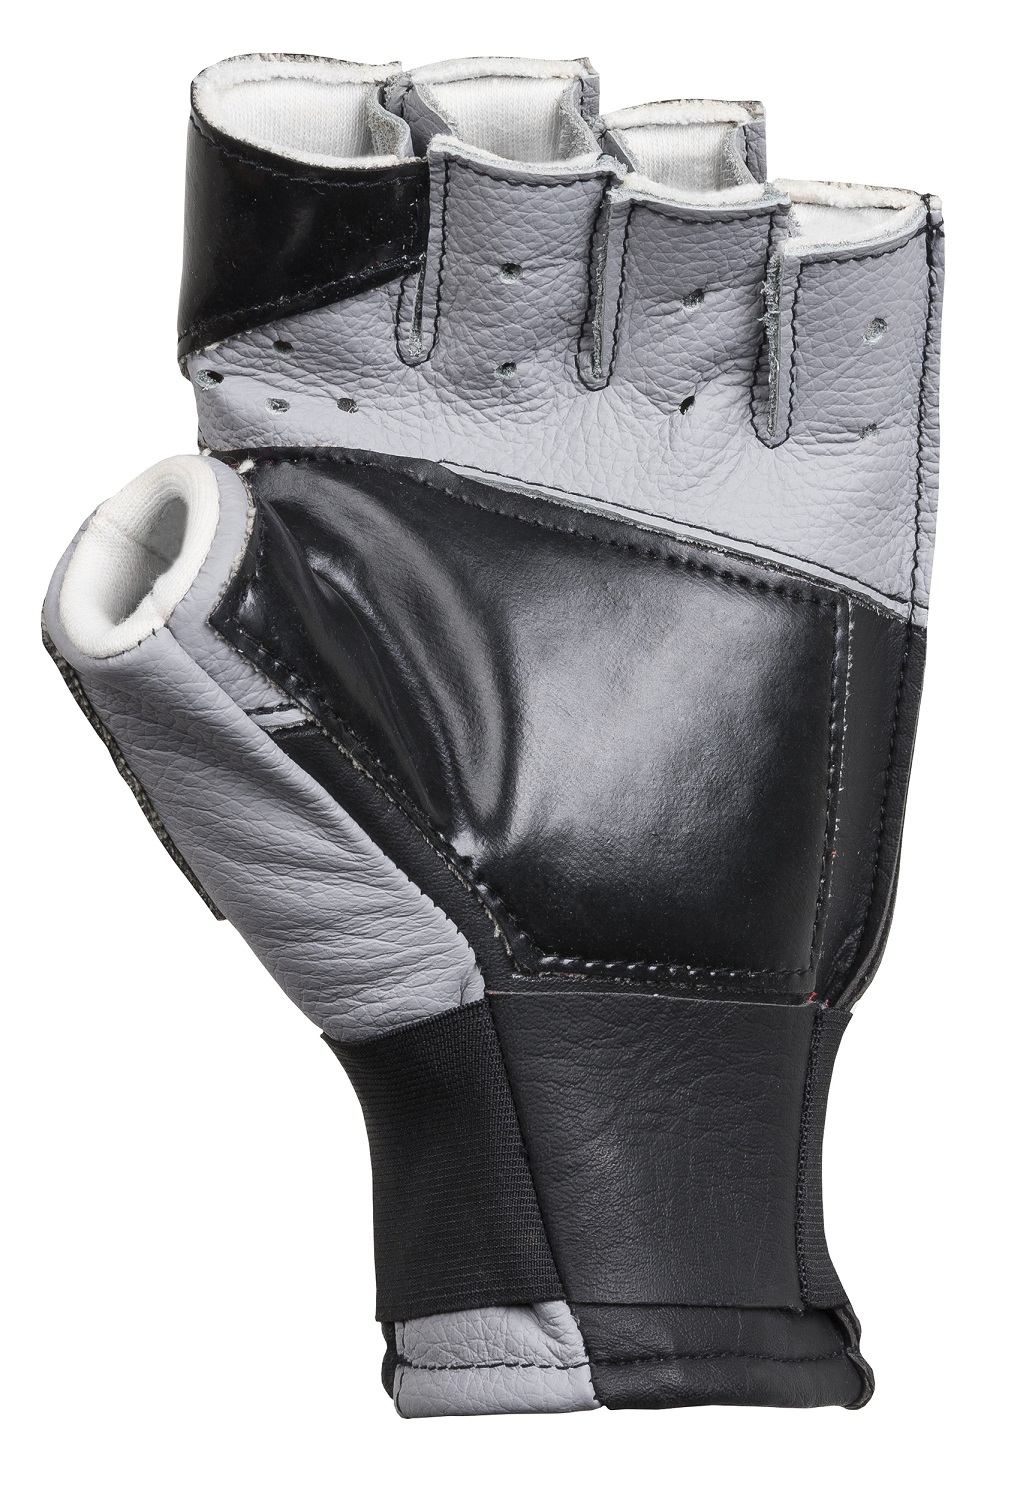 AHG top grip shooting glove